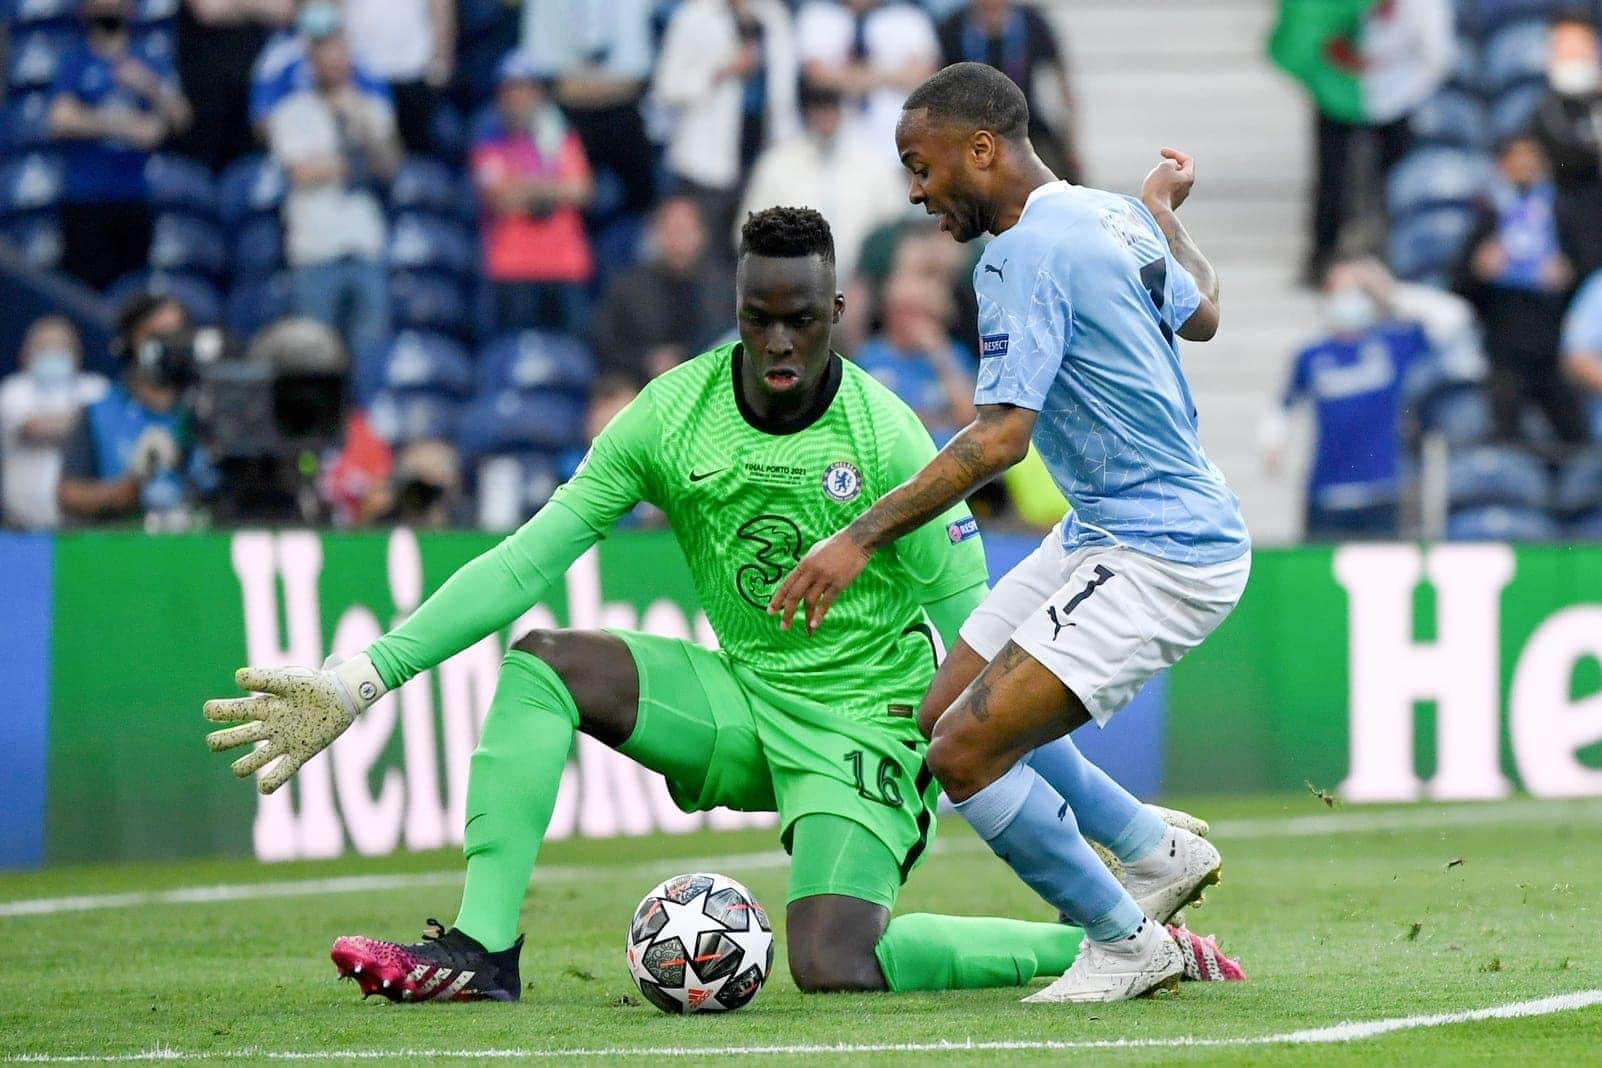 Manchester City - FC Chelsea Sterling Mendy